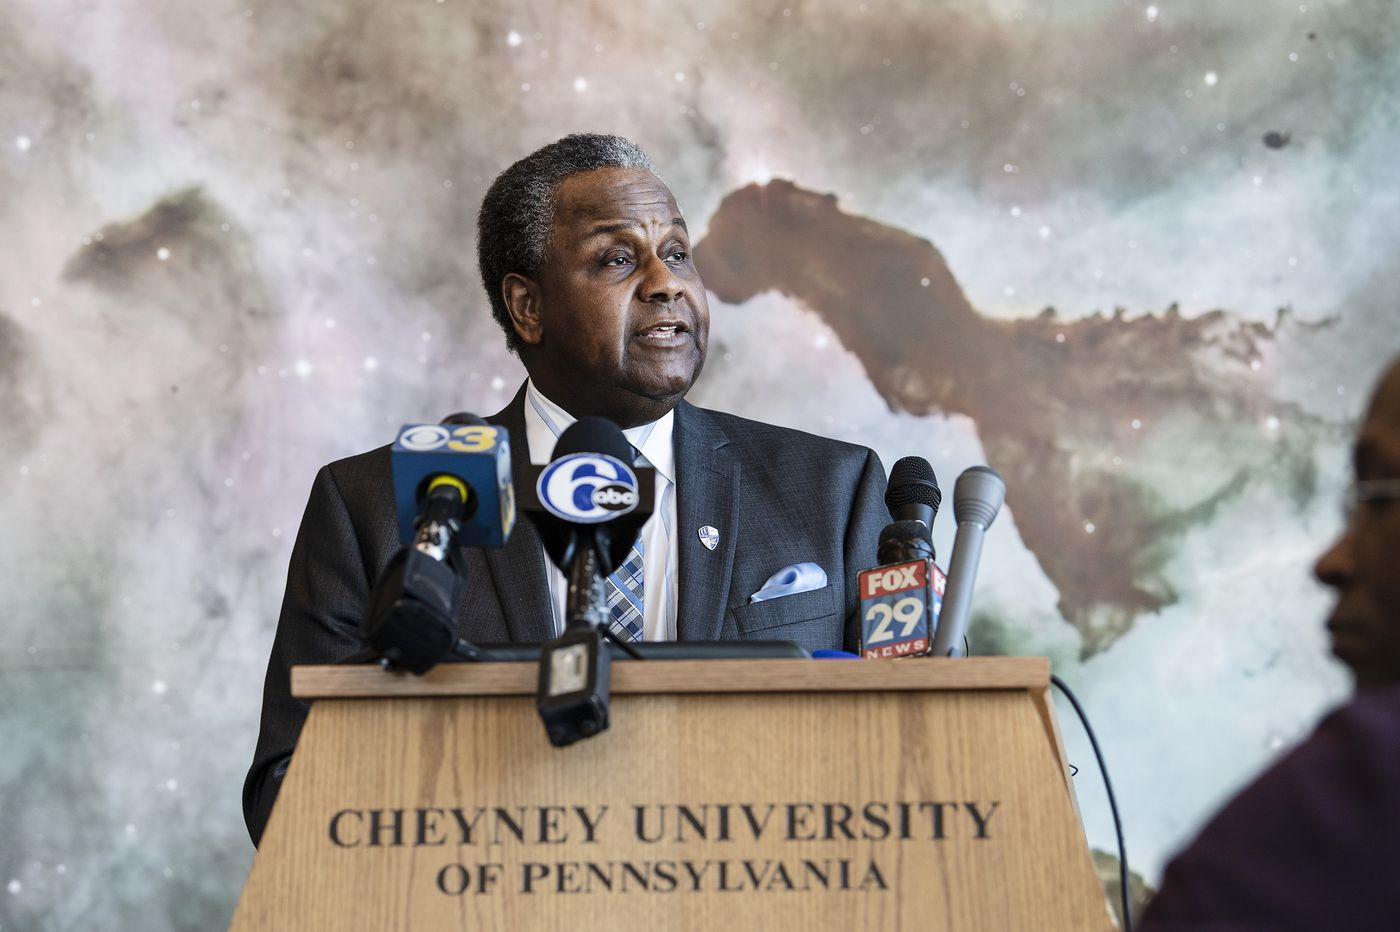 Cheyney's president vowed a balanced budget. As a crucial deadline approaches, he's optimistic.